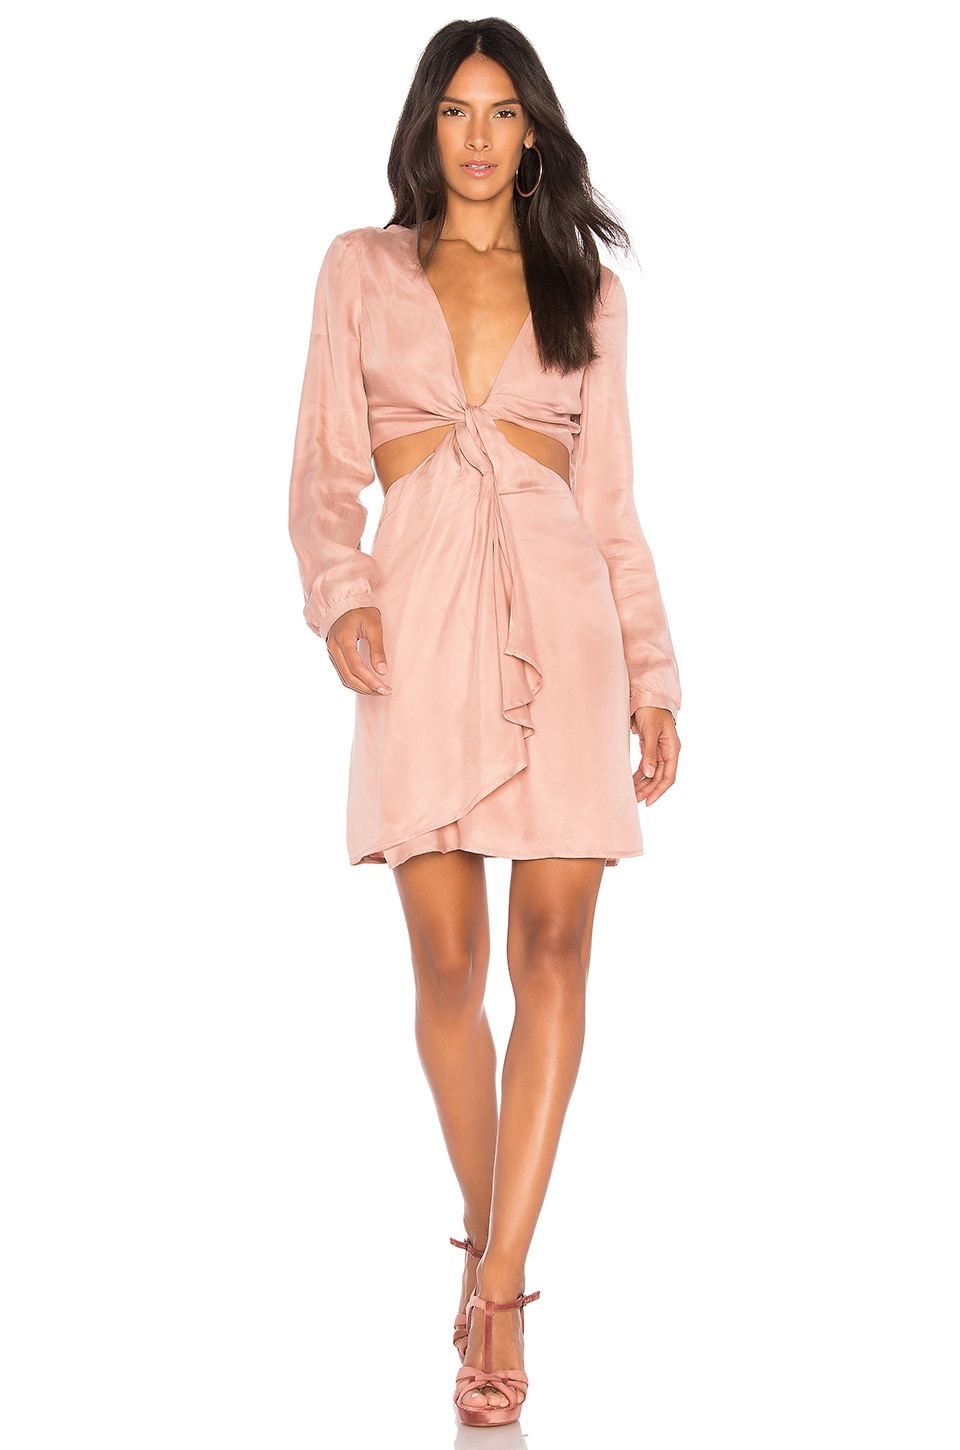 Bardot Twist Satin Dress in Ash Rose